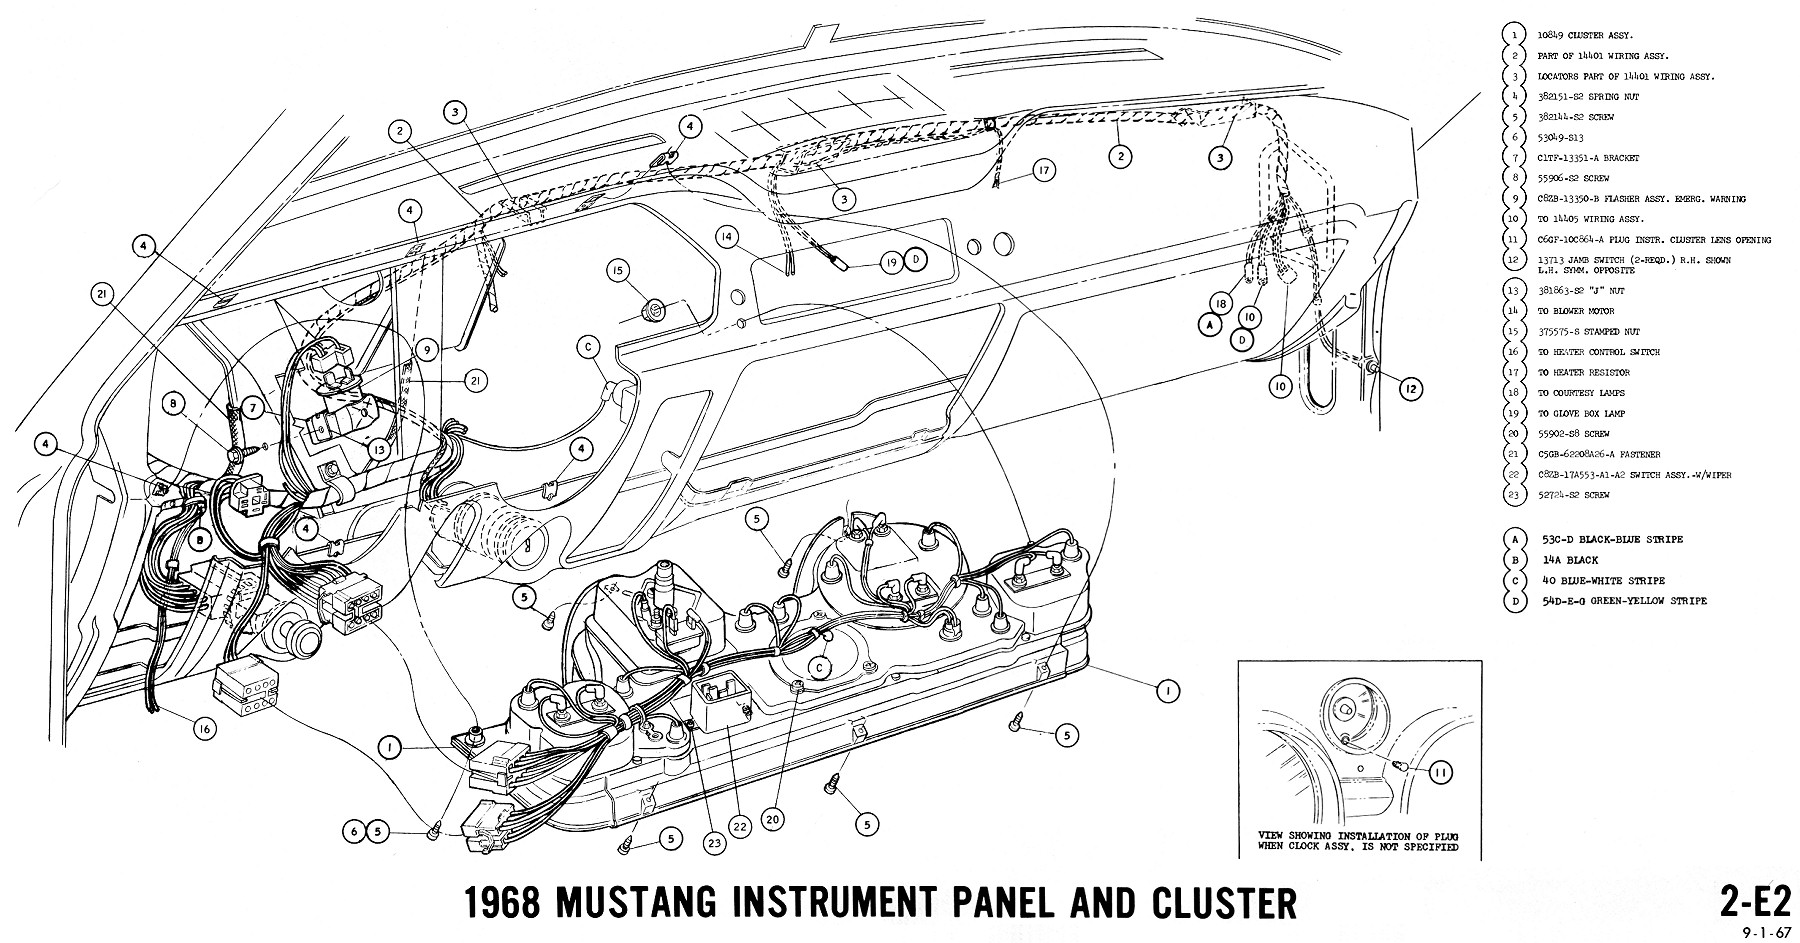 1968 Ford F100 Instrument Cluster Wiring Diagram - DIY Wiring Diagrams Wiring Diagram For Ford F on 1978 ford truck wiring diagram, 56 ford truck wiring diagram, 1973 ford wiring diagram, 1976 ford ignition wiring diagram, ford ignition switch wiring diagram, 1979 ford f-150 wiring diagram, 65 ford pickup 4x4, 65 ford truck parts, 65 chevelle wiring diagram, ford tractor starter solenoid wiring diagram, 1953 ford wiring diagram, 1966 ford wiring diagram, 65 ford f-250, 1954 ford wiring diagram, 1968 ford f-250 wiring diagram, 65 mustang engine diagram, 65 ford steering column wiring, ford f150 wiring diagram, 1957 ford wiring diagram, 1965 ford wiring diagram,